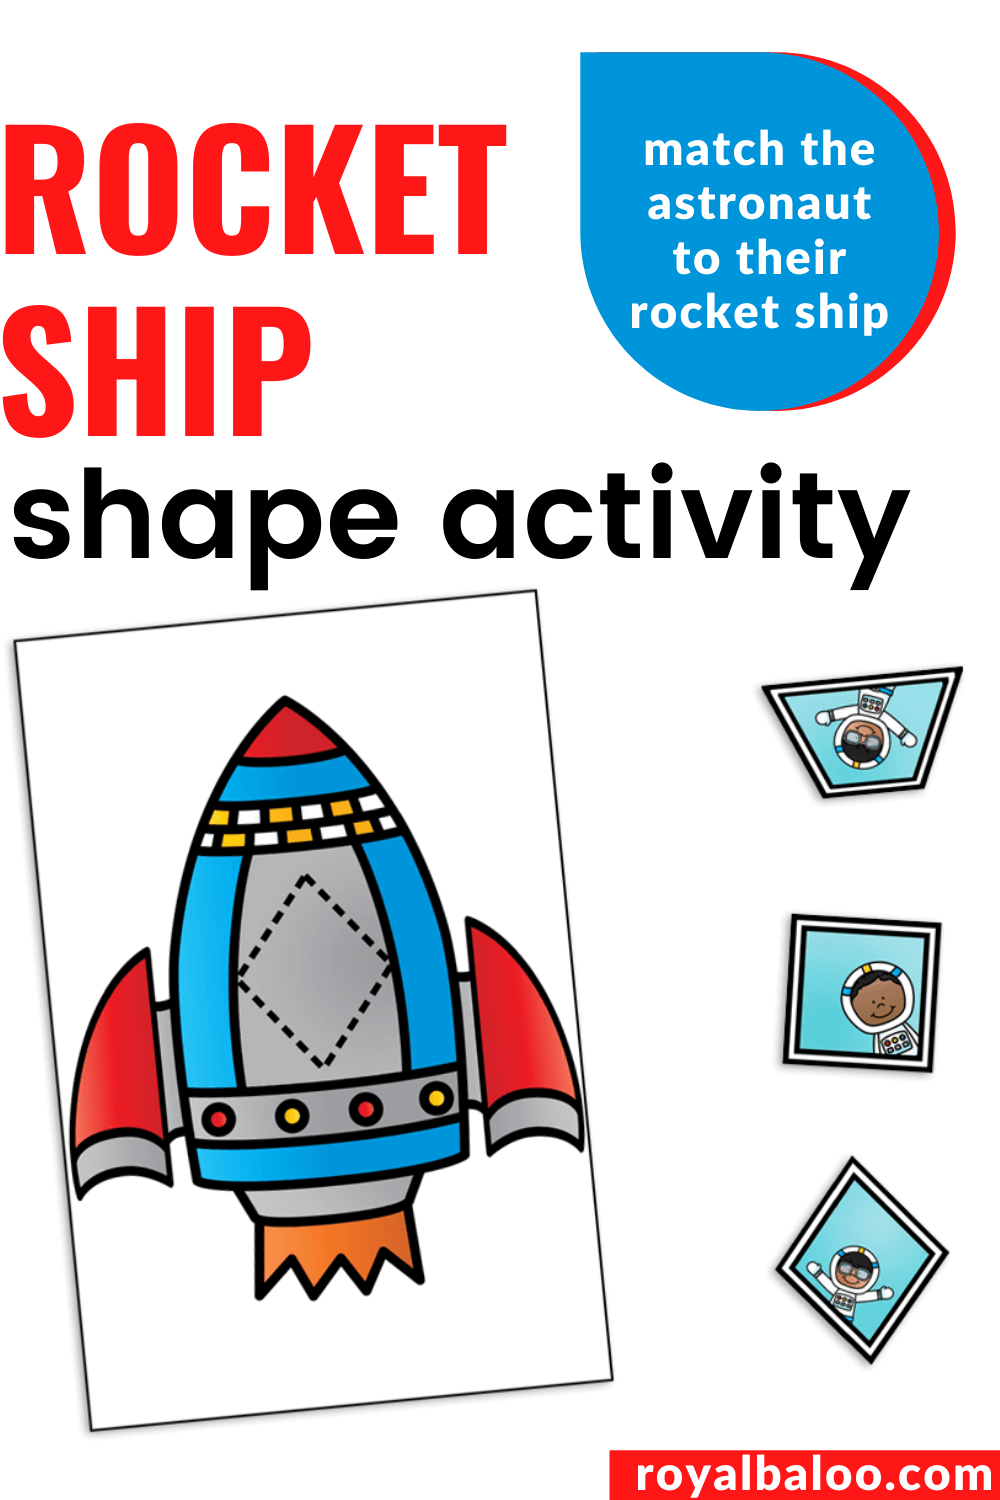 Rocket Ship Shape Activity Royal Baloo In 2020 Shapes Activities Early Learning Math Preschool Learning Activities [ 1500 x 1000 Pixel ]